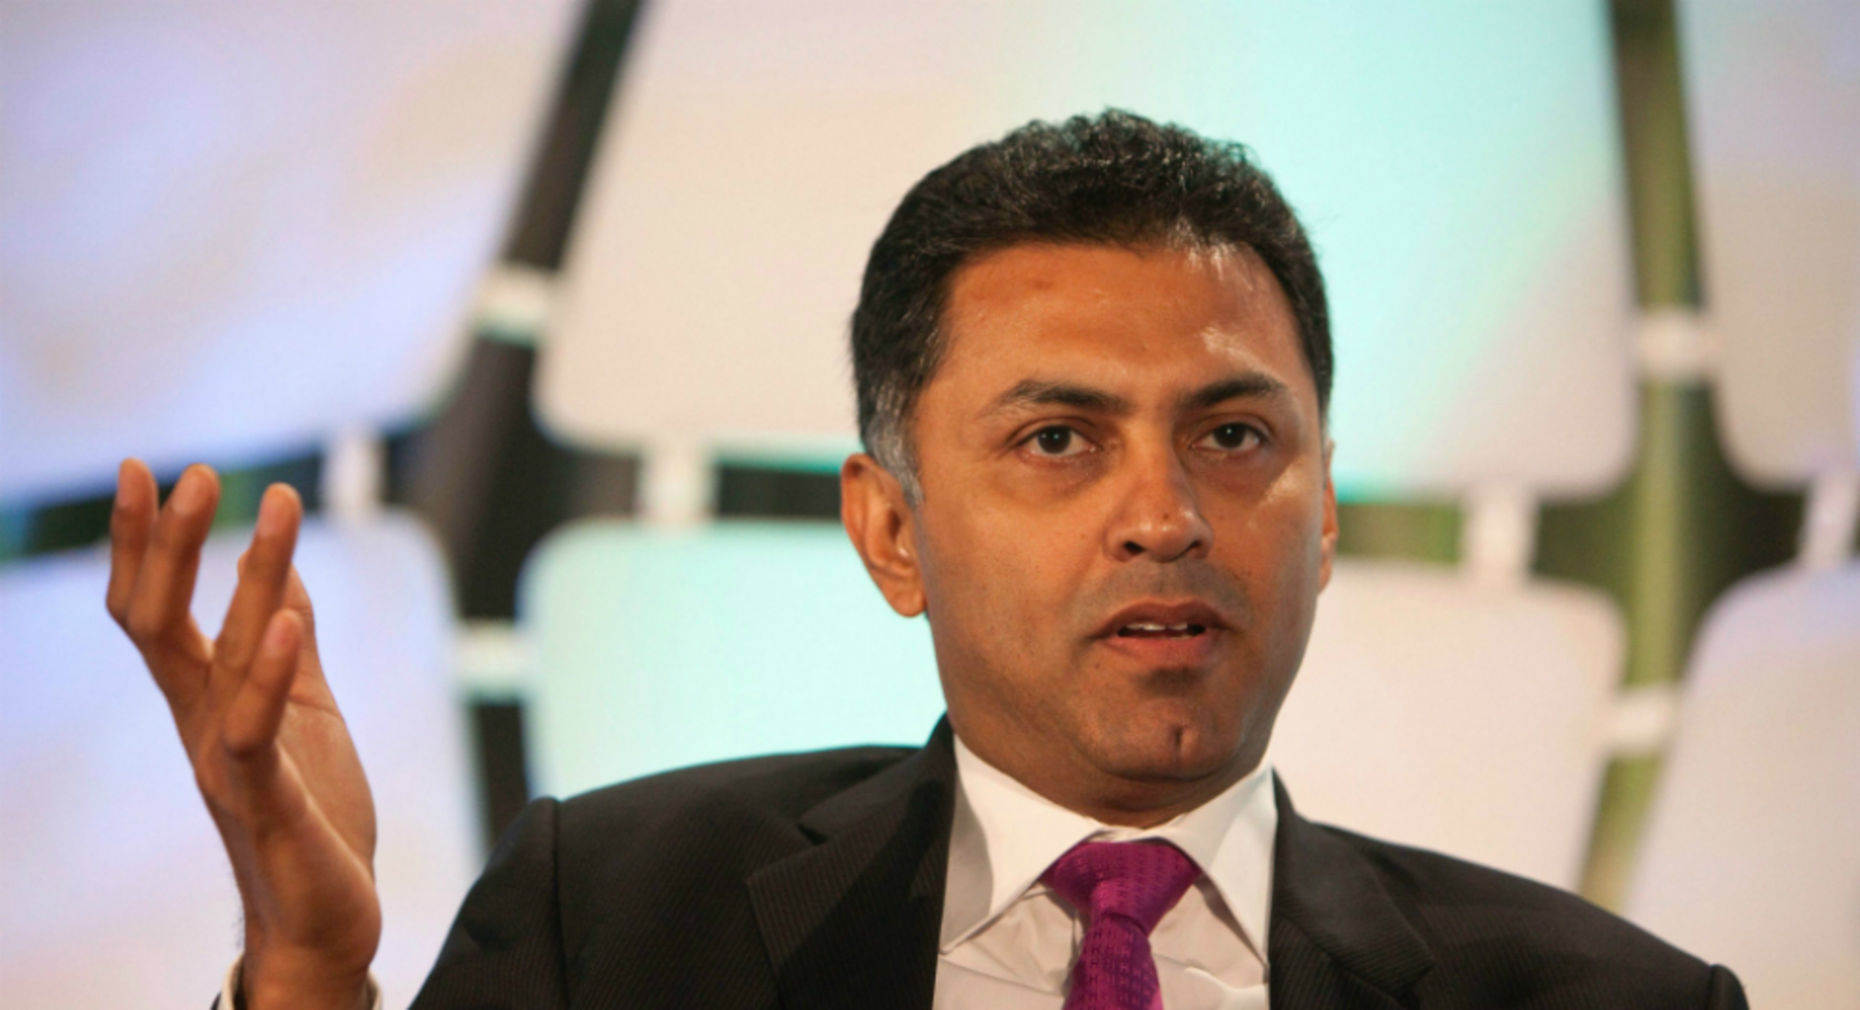 Former Google executive Nikesh Arora. Photo by Bloomberg.